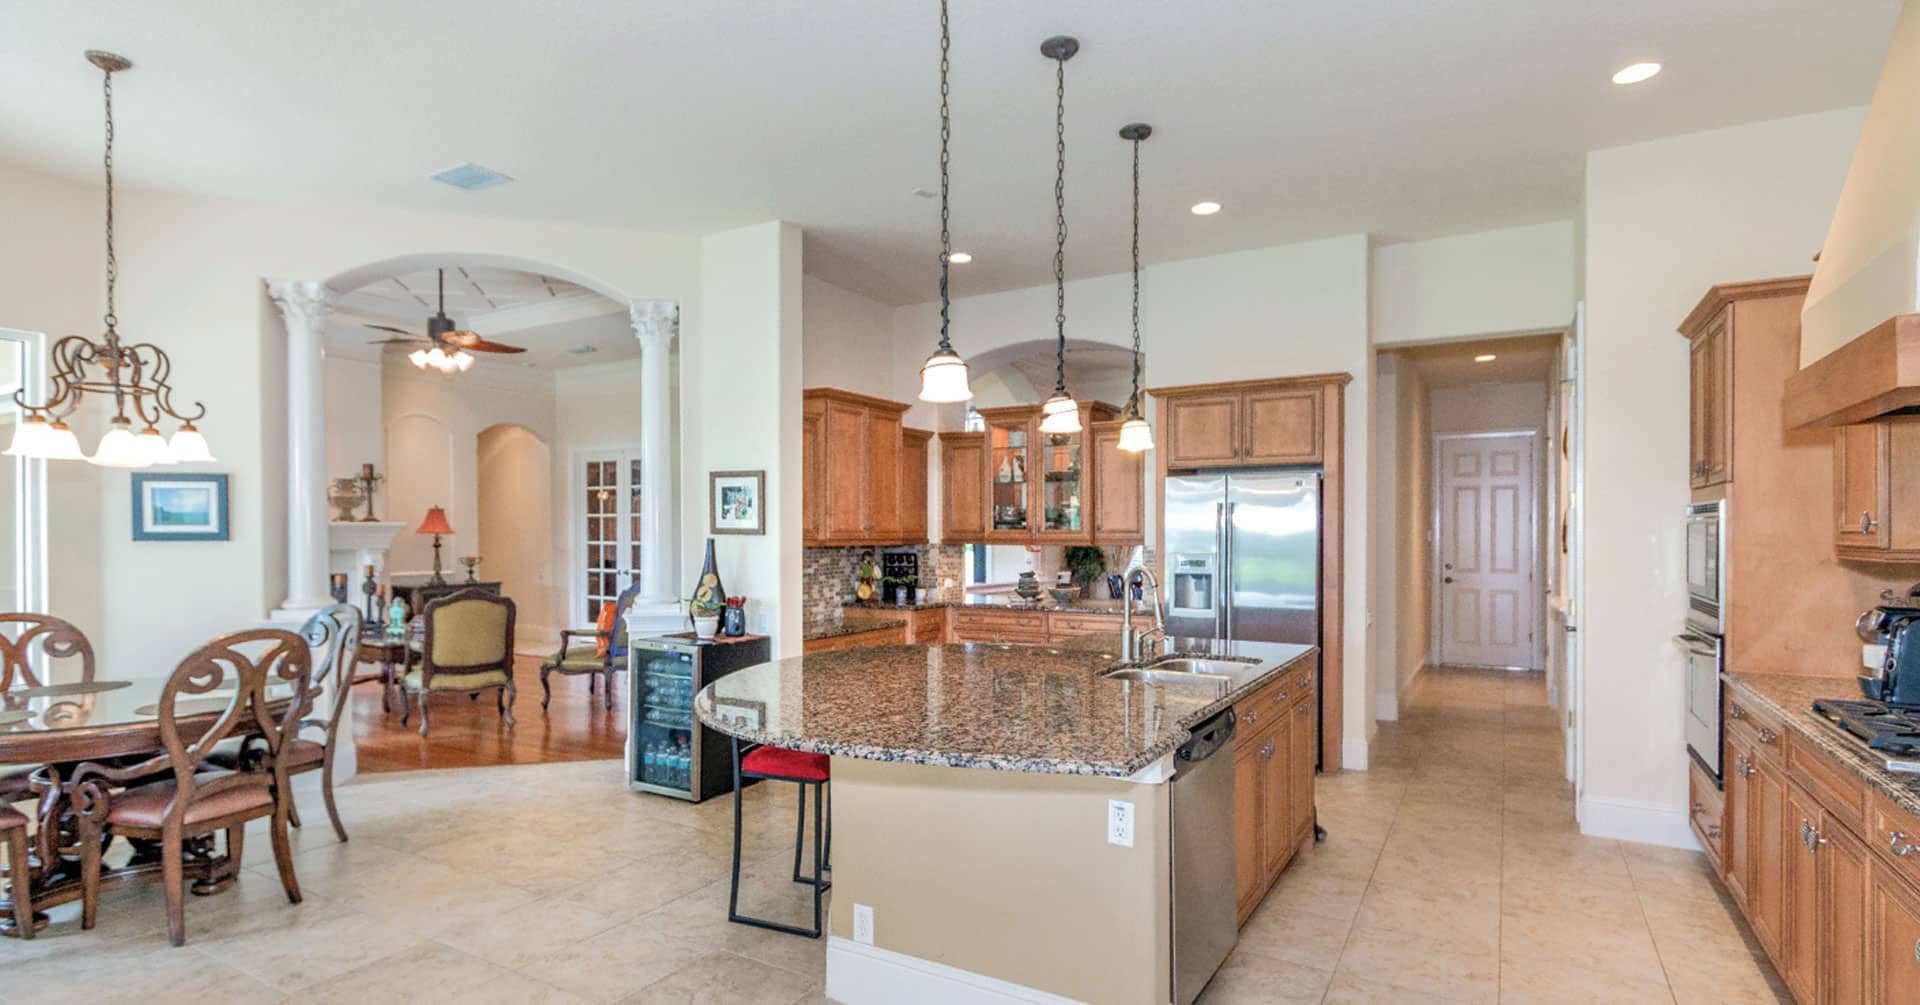 Rent-To-Own company opens up huge home buying opportunities in Lake Mary Fl 32746 | Gitta Sells & Associates